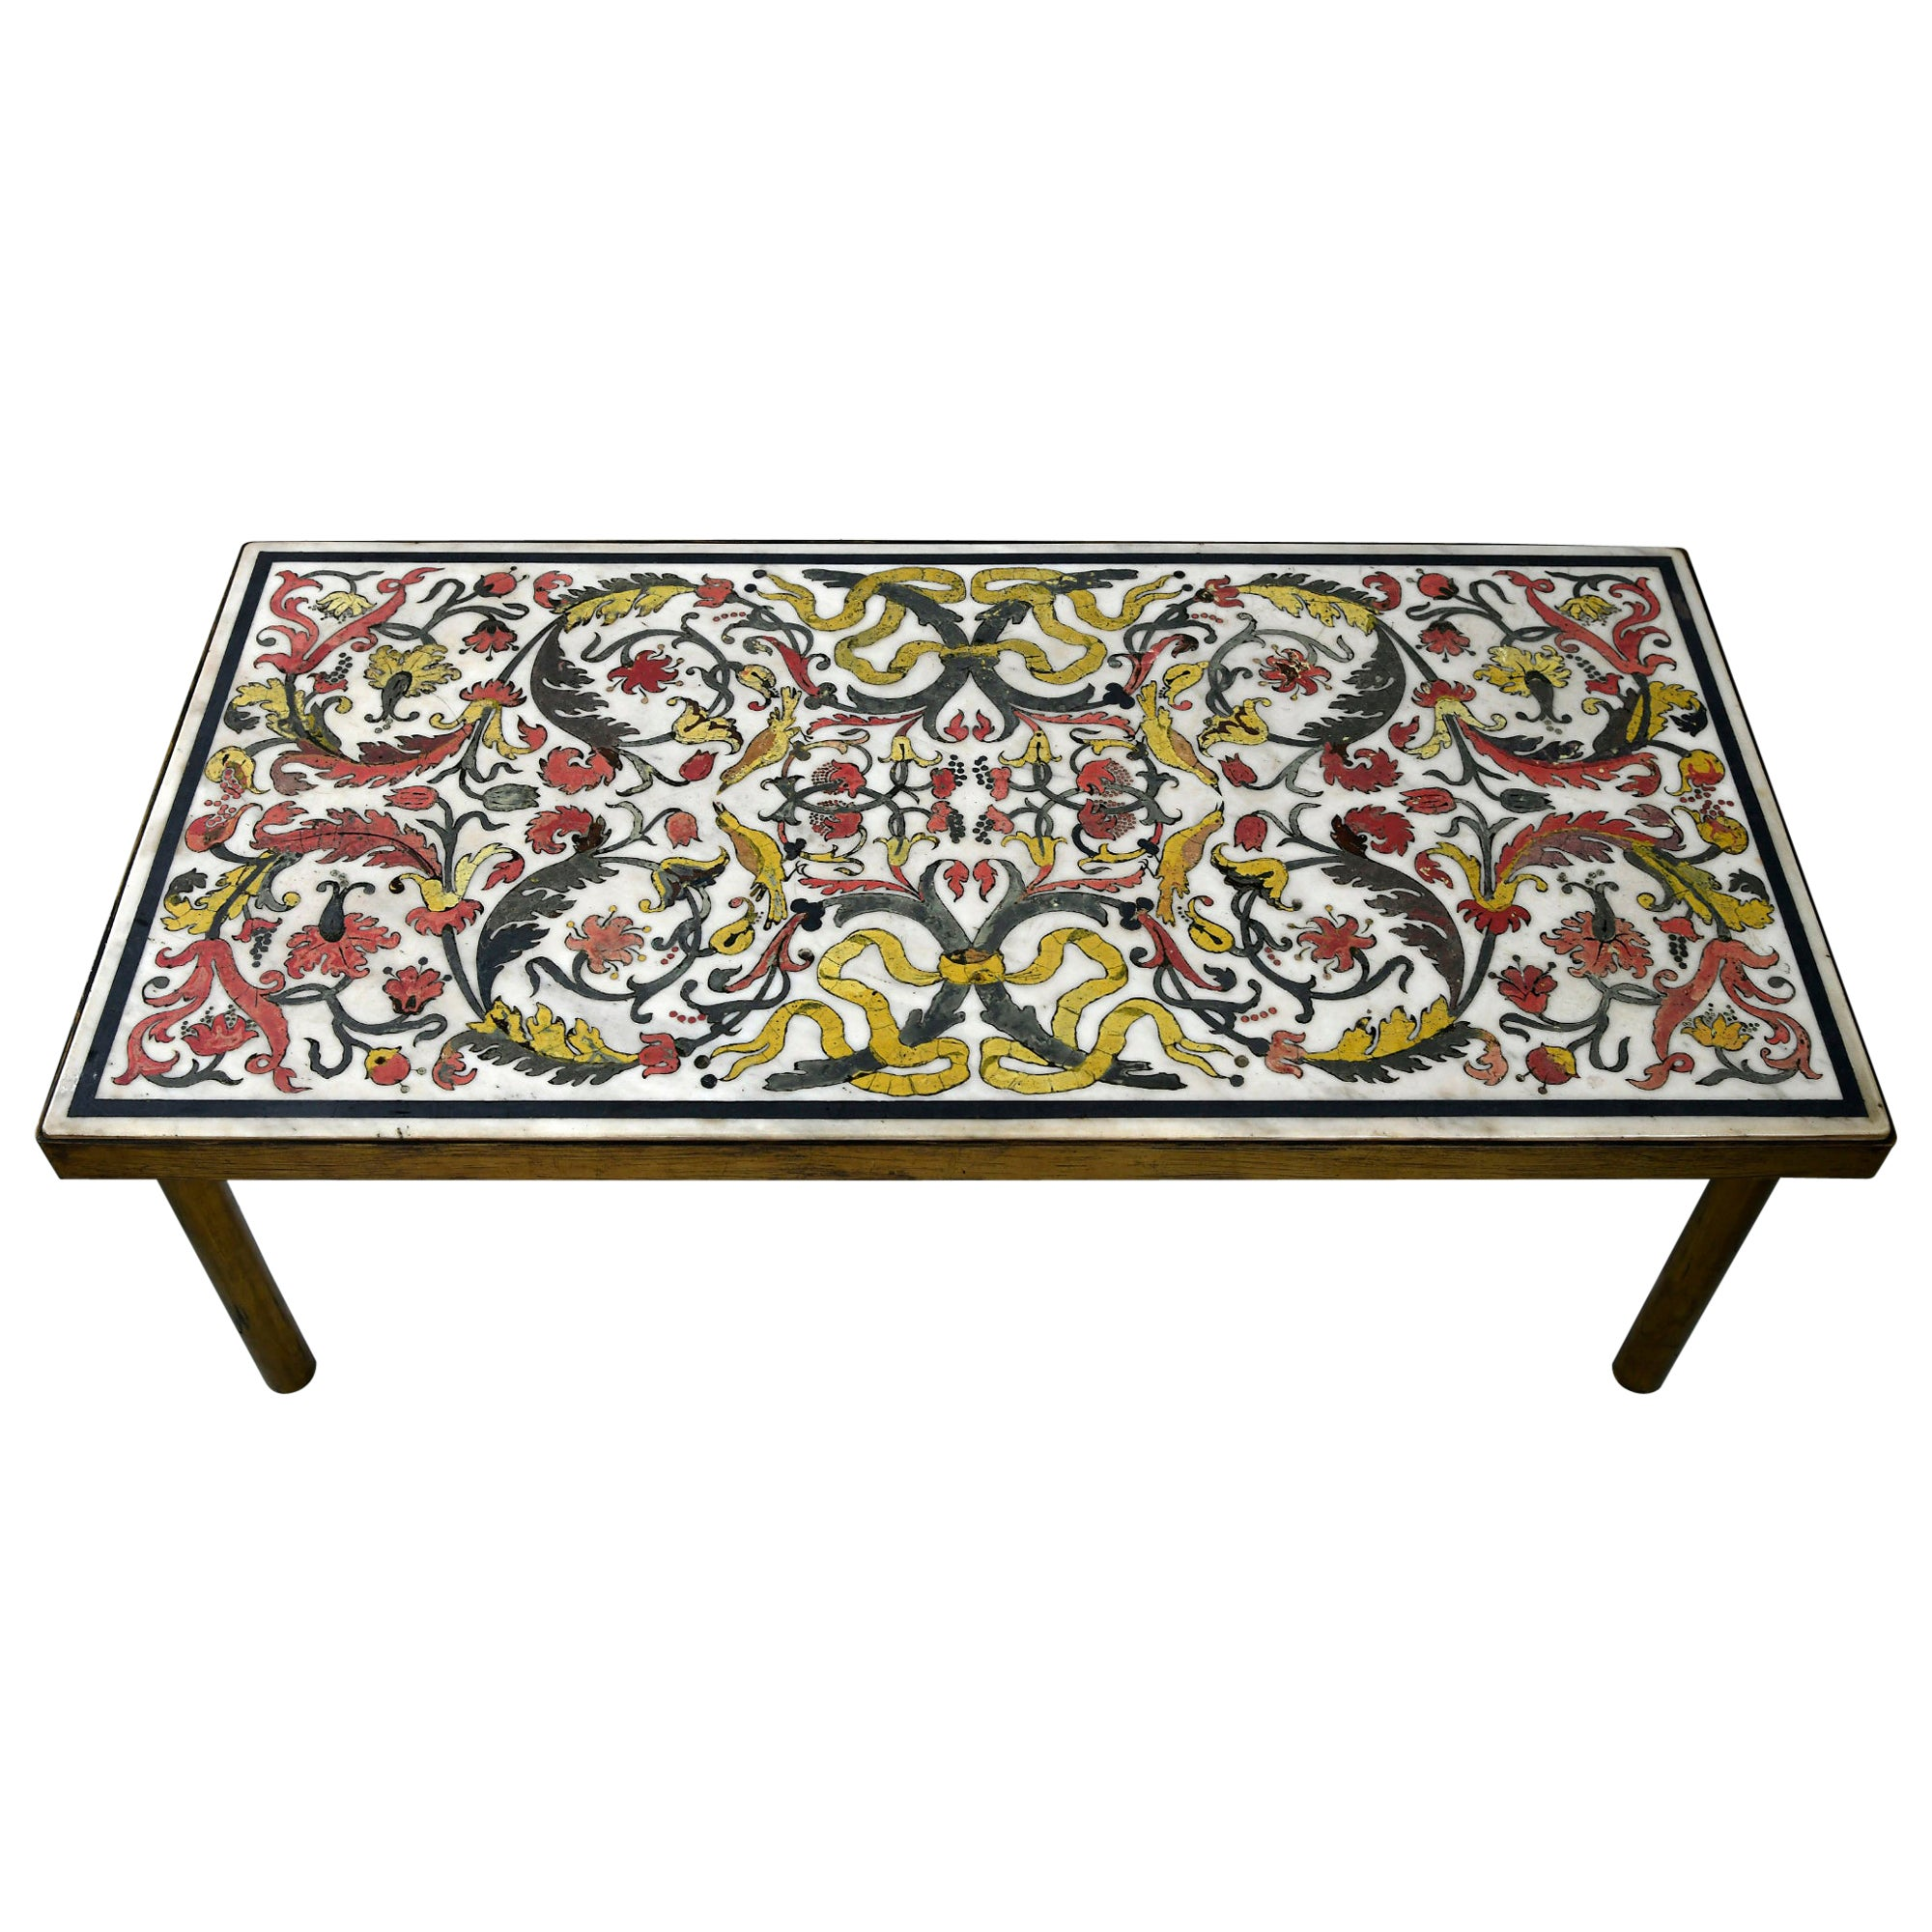 18th Century Scagliola Sofa Brass Table, Marble Top with Scagliola Midcentury